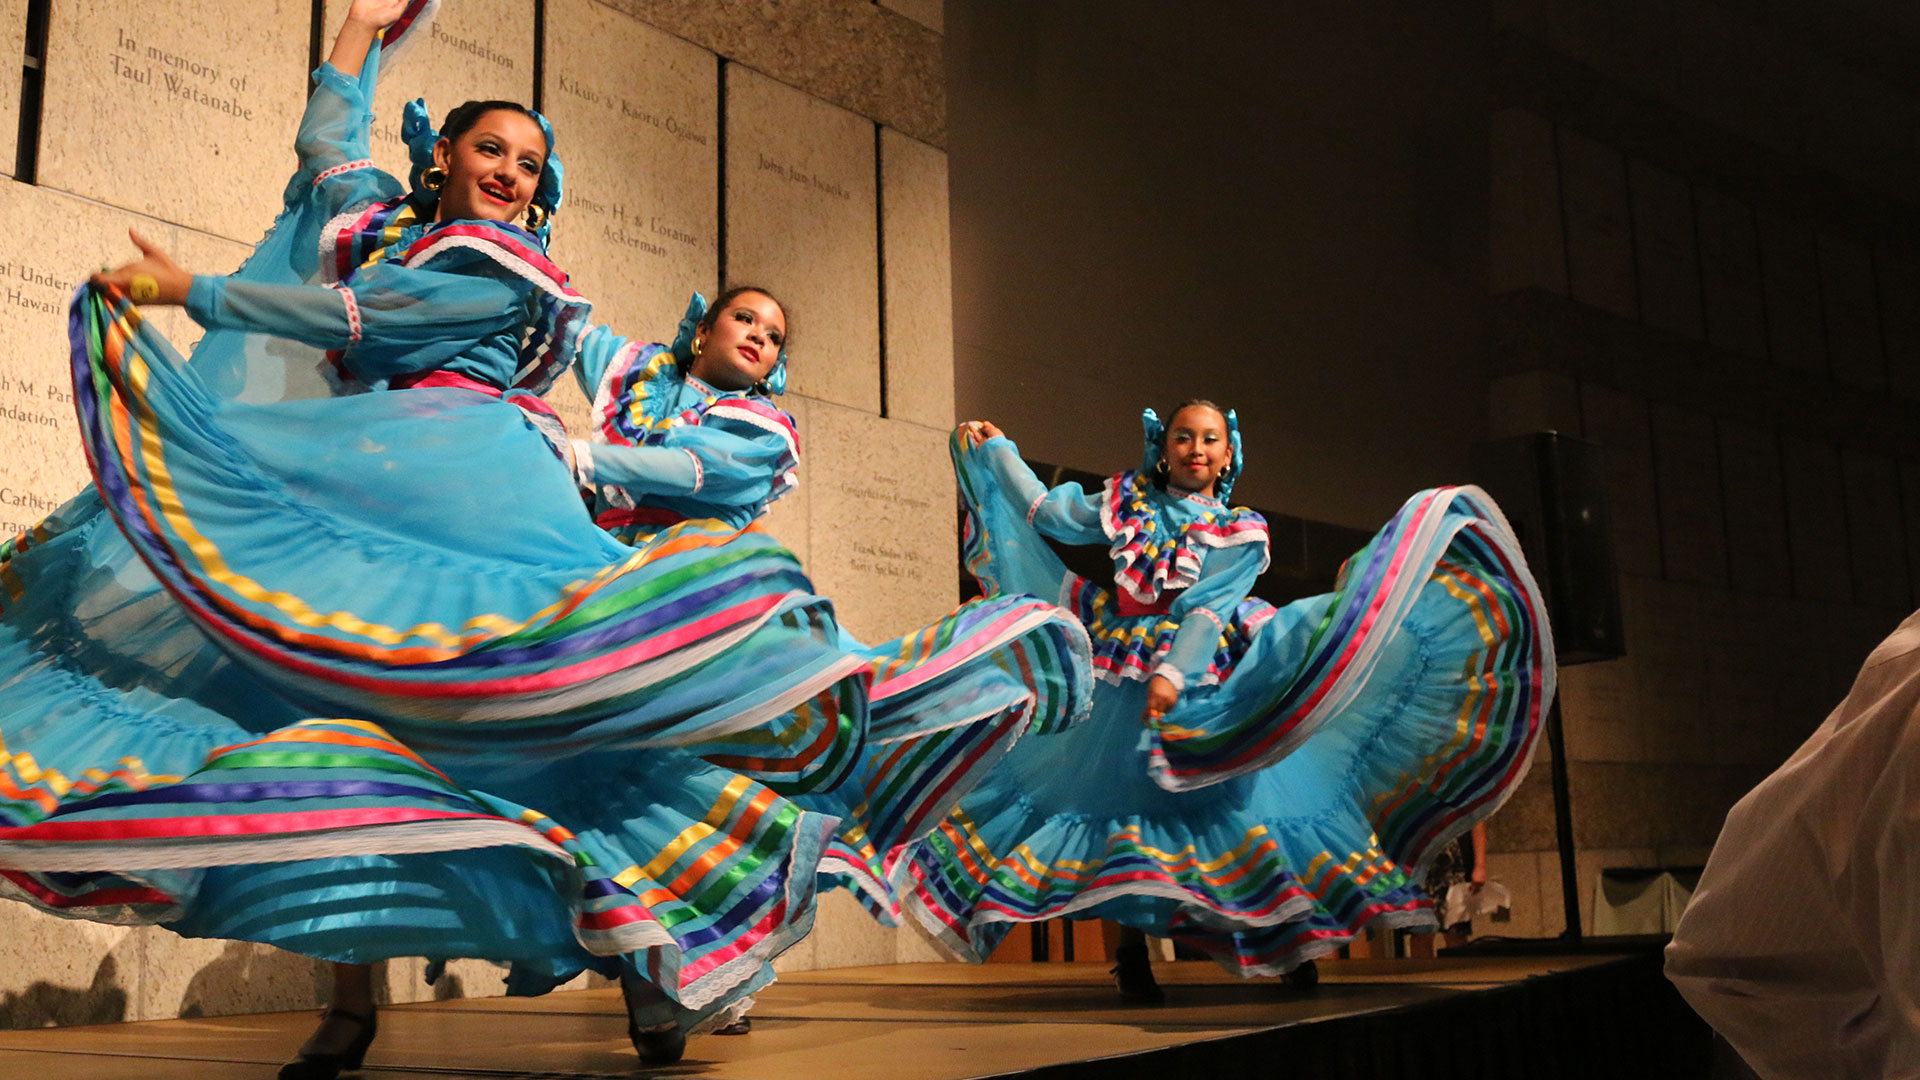 girls performing in cultural dance with beautiful colorful dresses